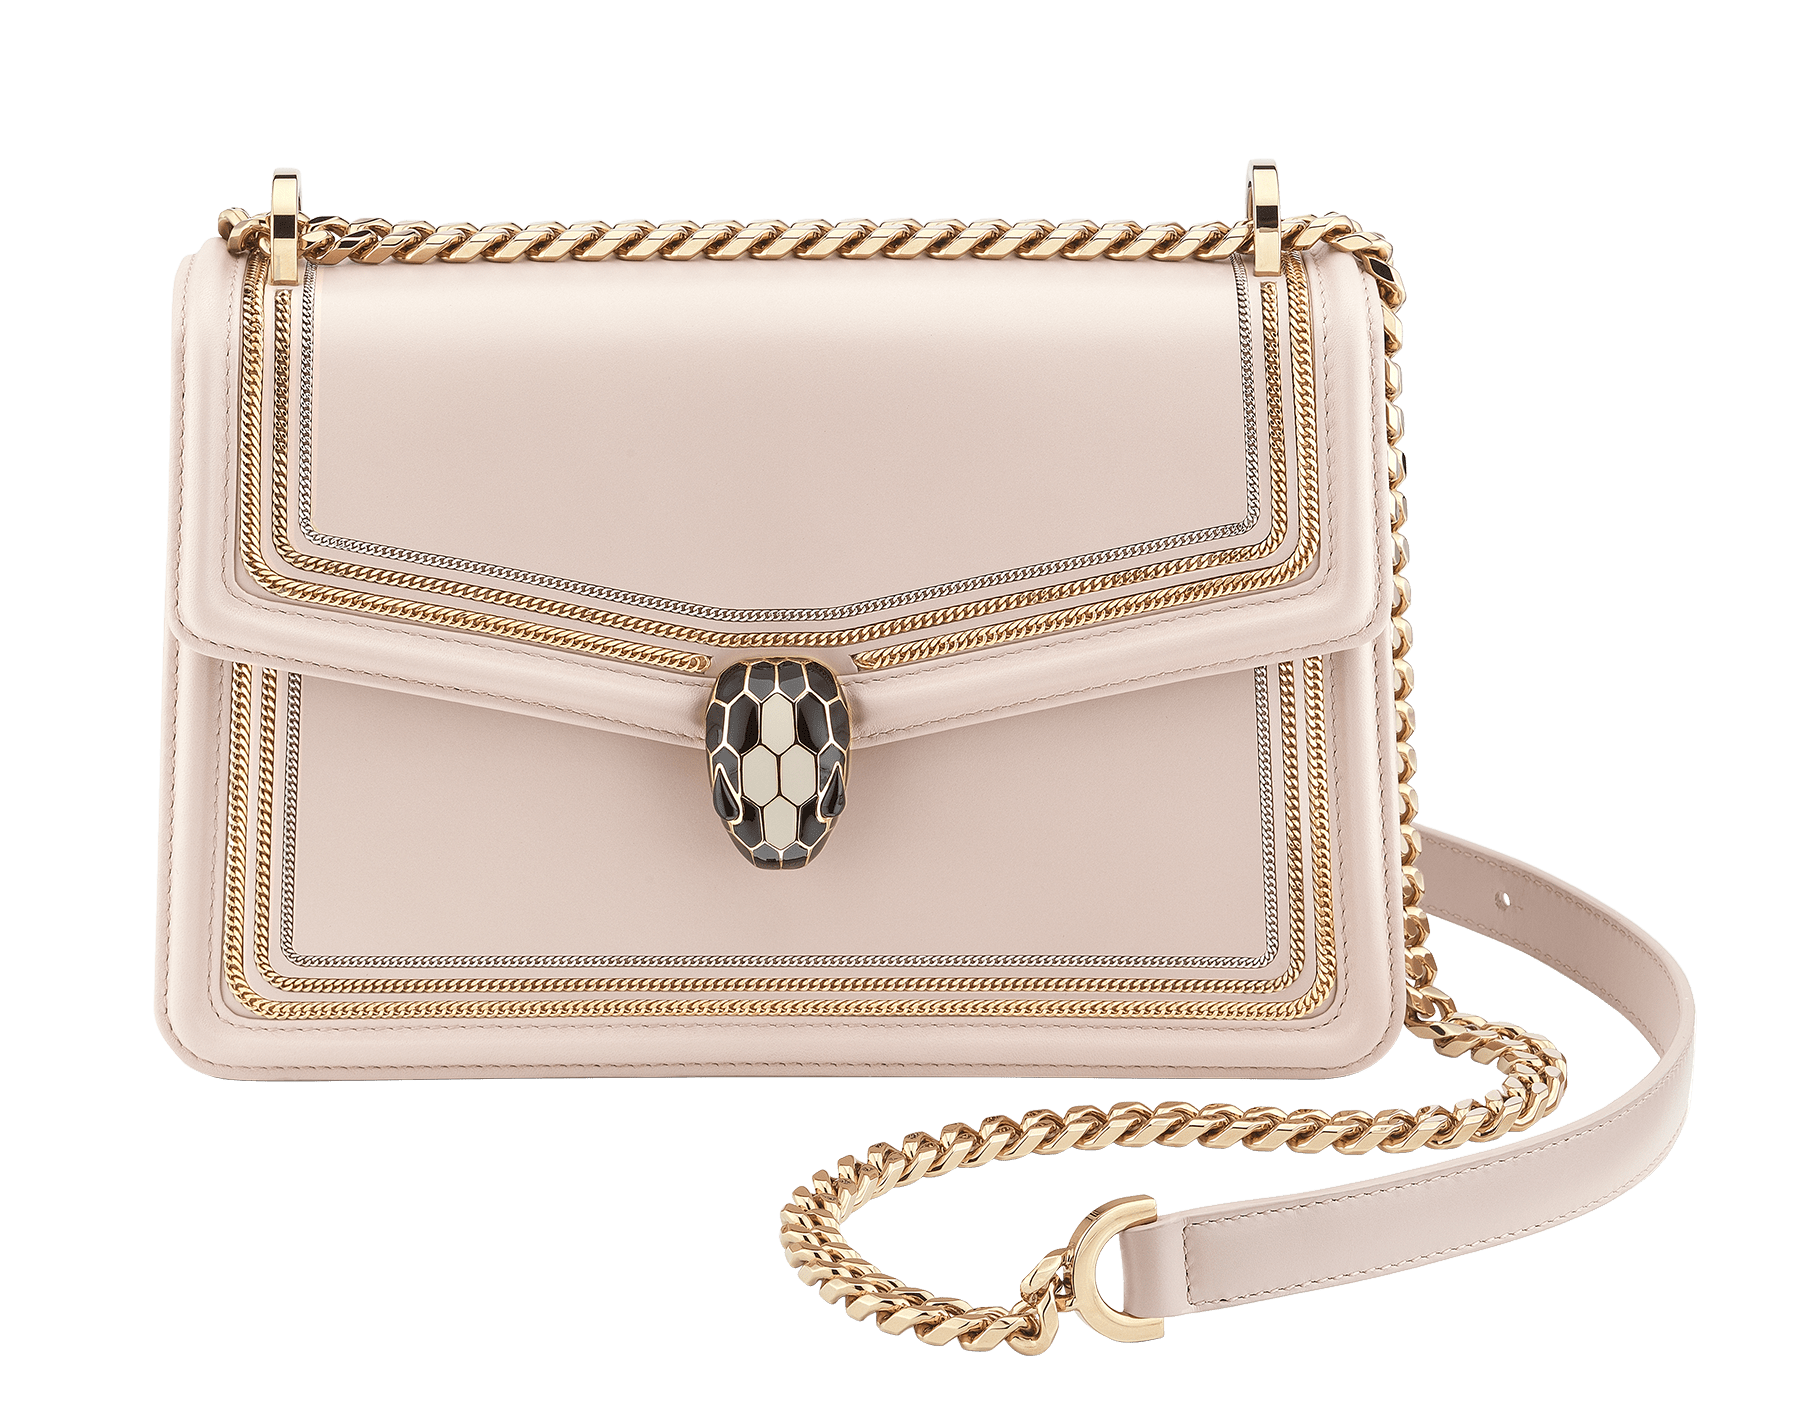 """Serpenti Diamond Blast"" shoulder bag in black smooth calf leather, featuring a 3-Chain motif in light gold and palladium finishing. Iconic snakehead closure in light gold plated brass enriched with black and white enamel and black onyx eyes 922-3CFCL image 1"